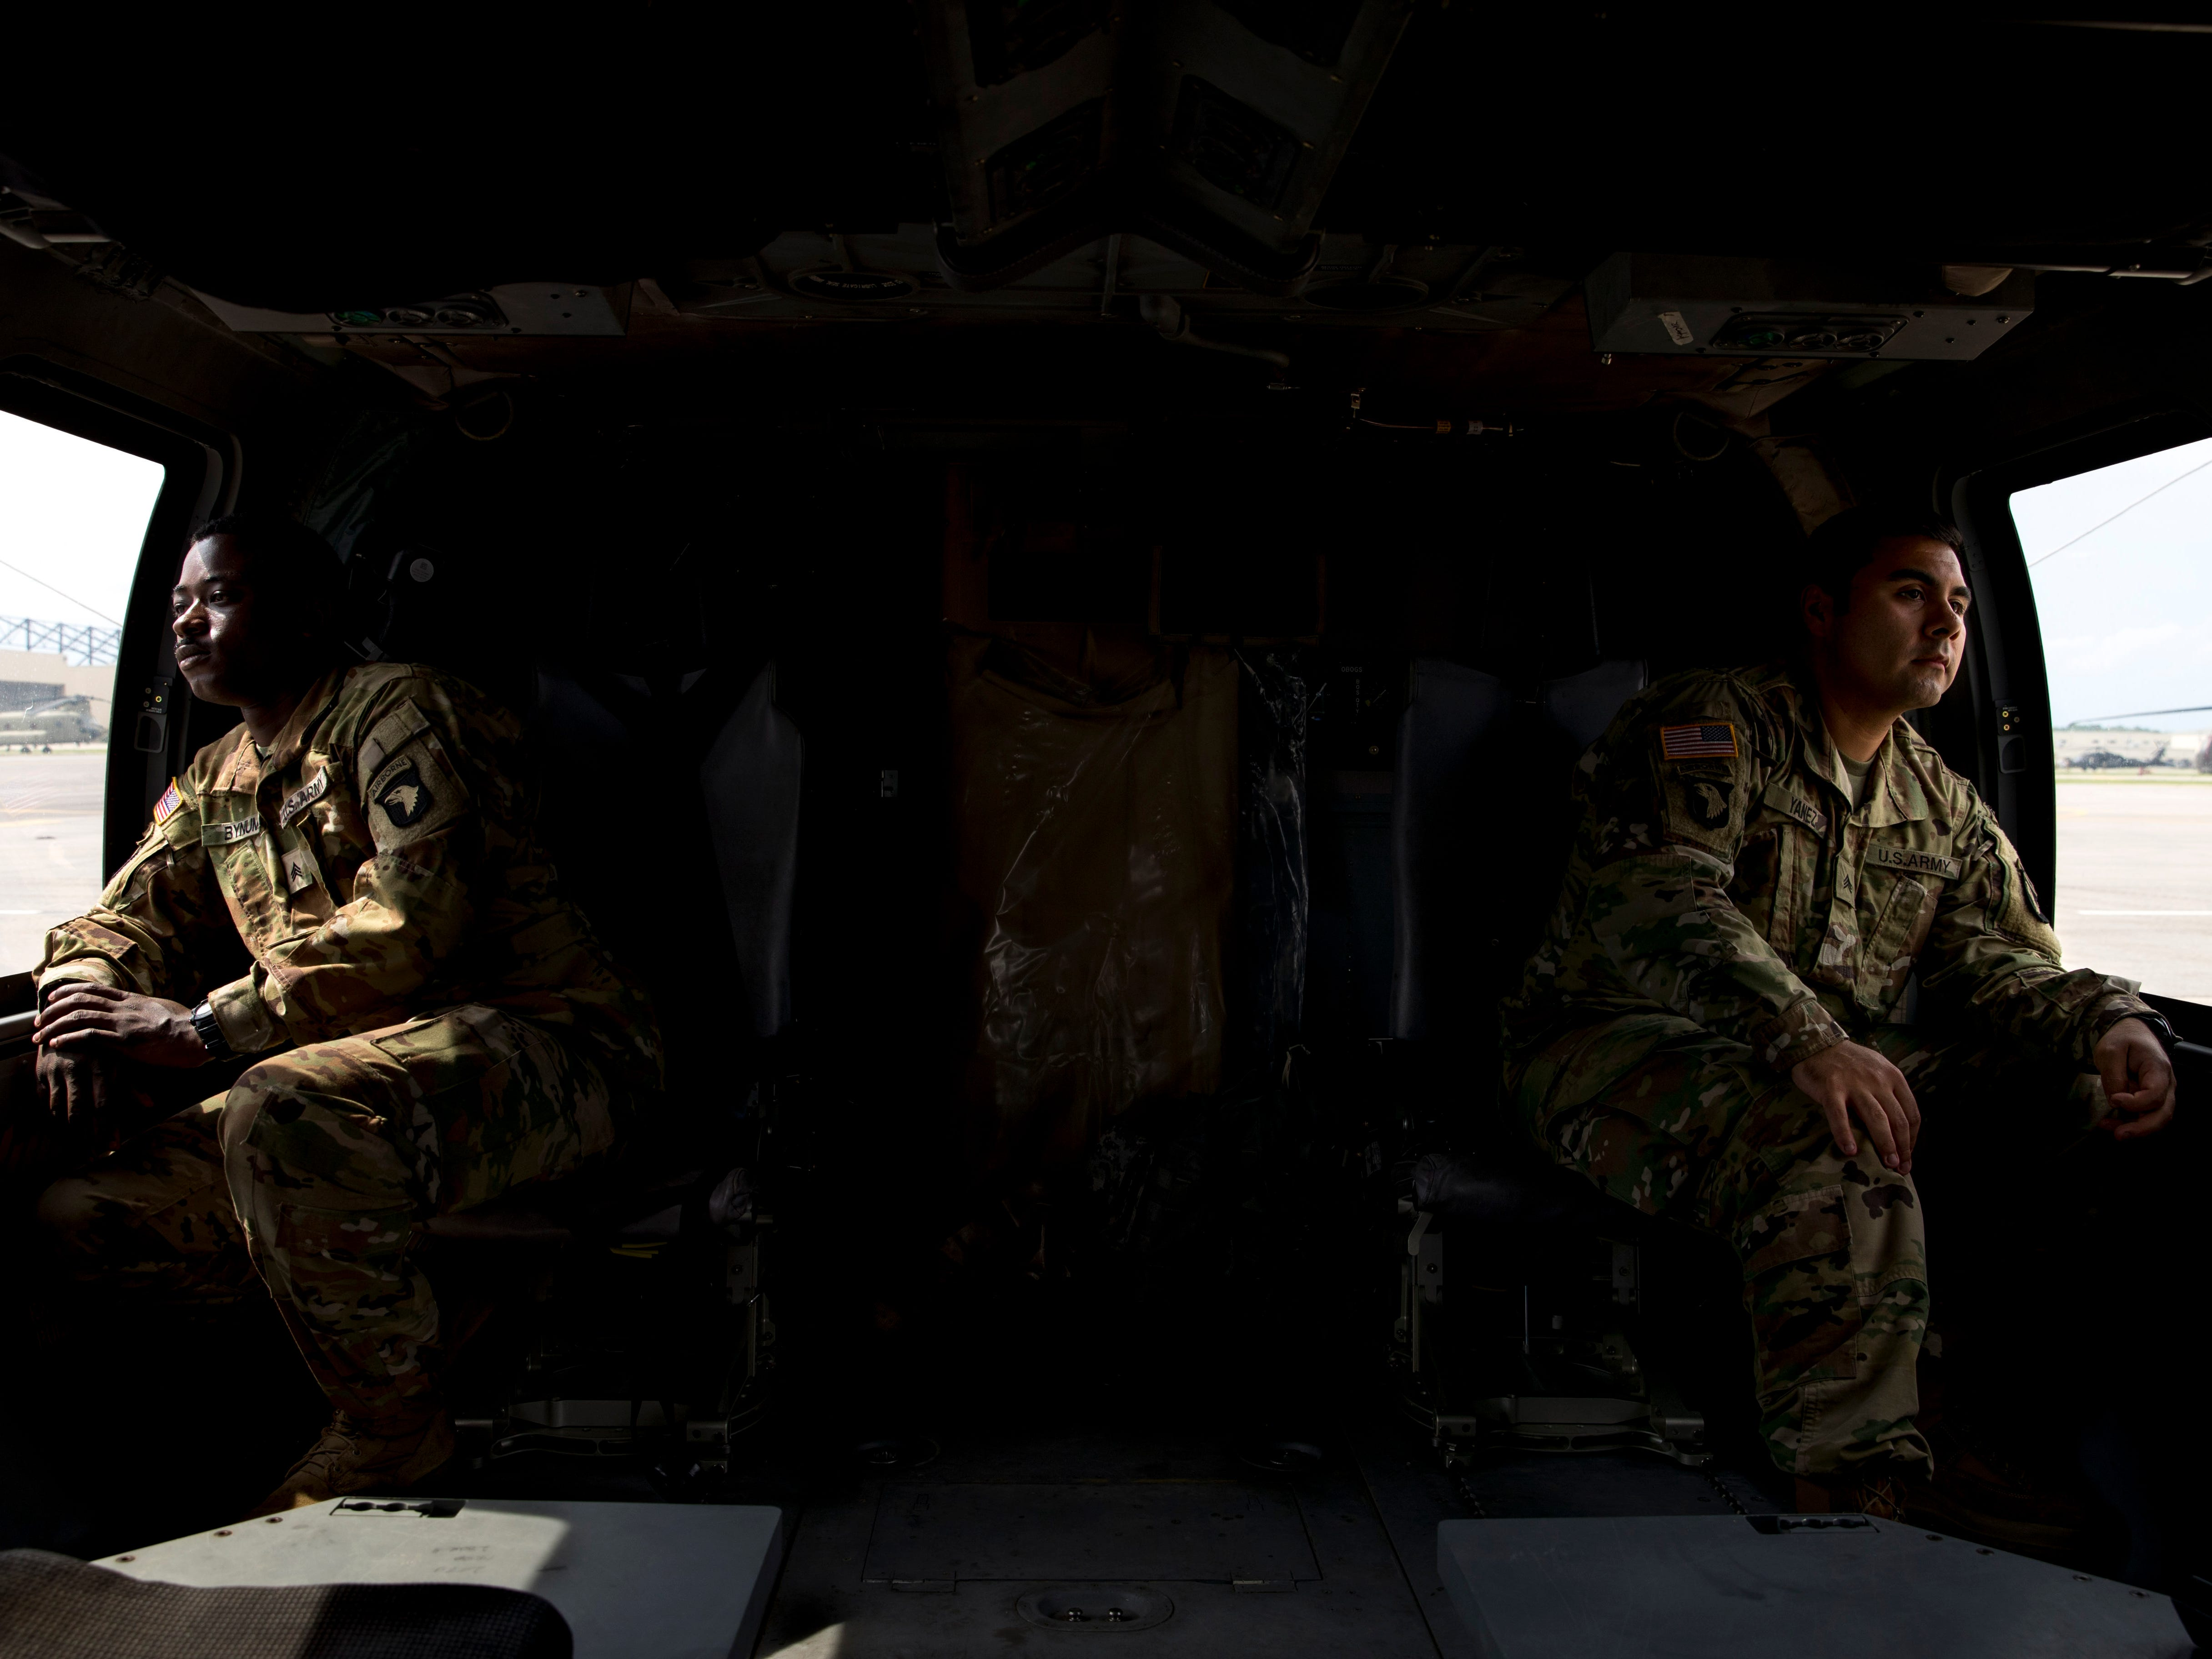 Sgt. Emmanuel Bynum, left, and Sgt. Armando Yanez peer out the windows of a Black Hawk helicopter Wednesday, May 1, 2019. The two were awarded Silver Stars for their actions during a mission in Afghanistan last year.